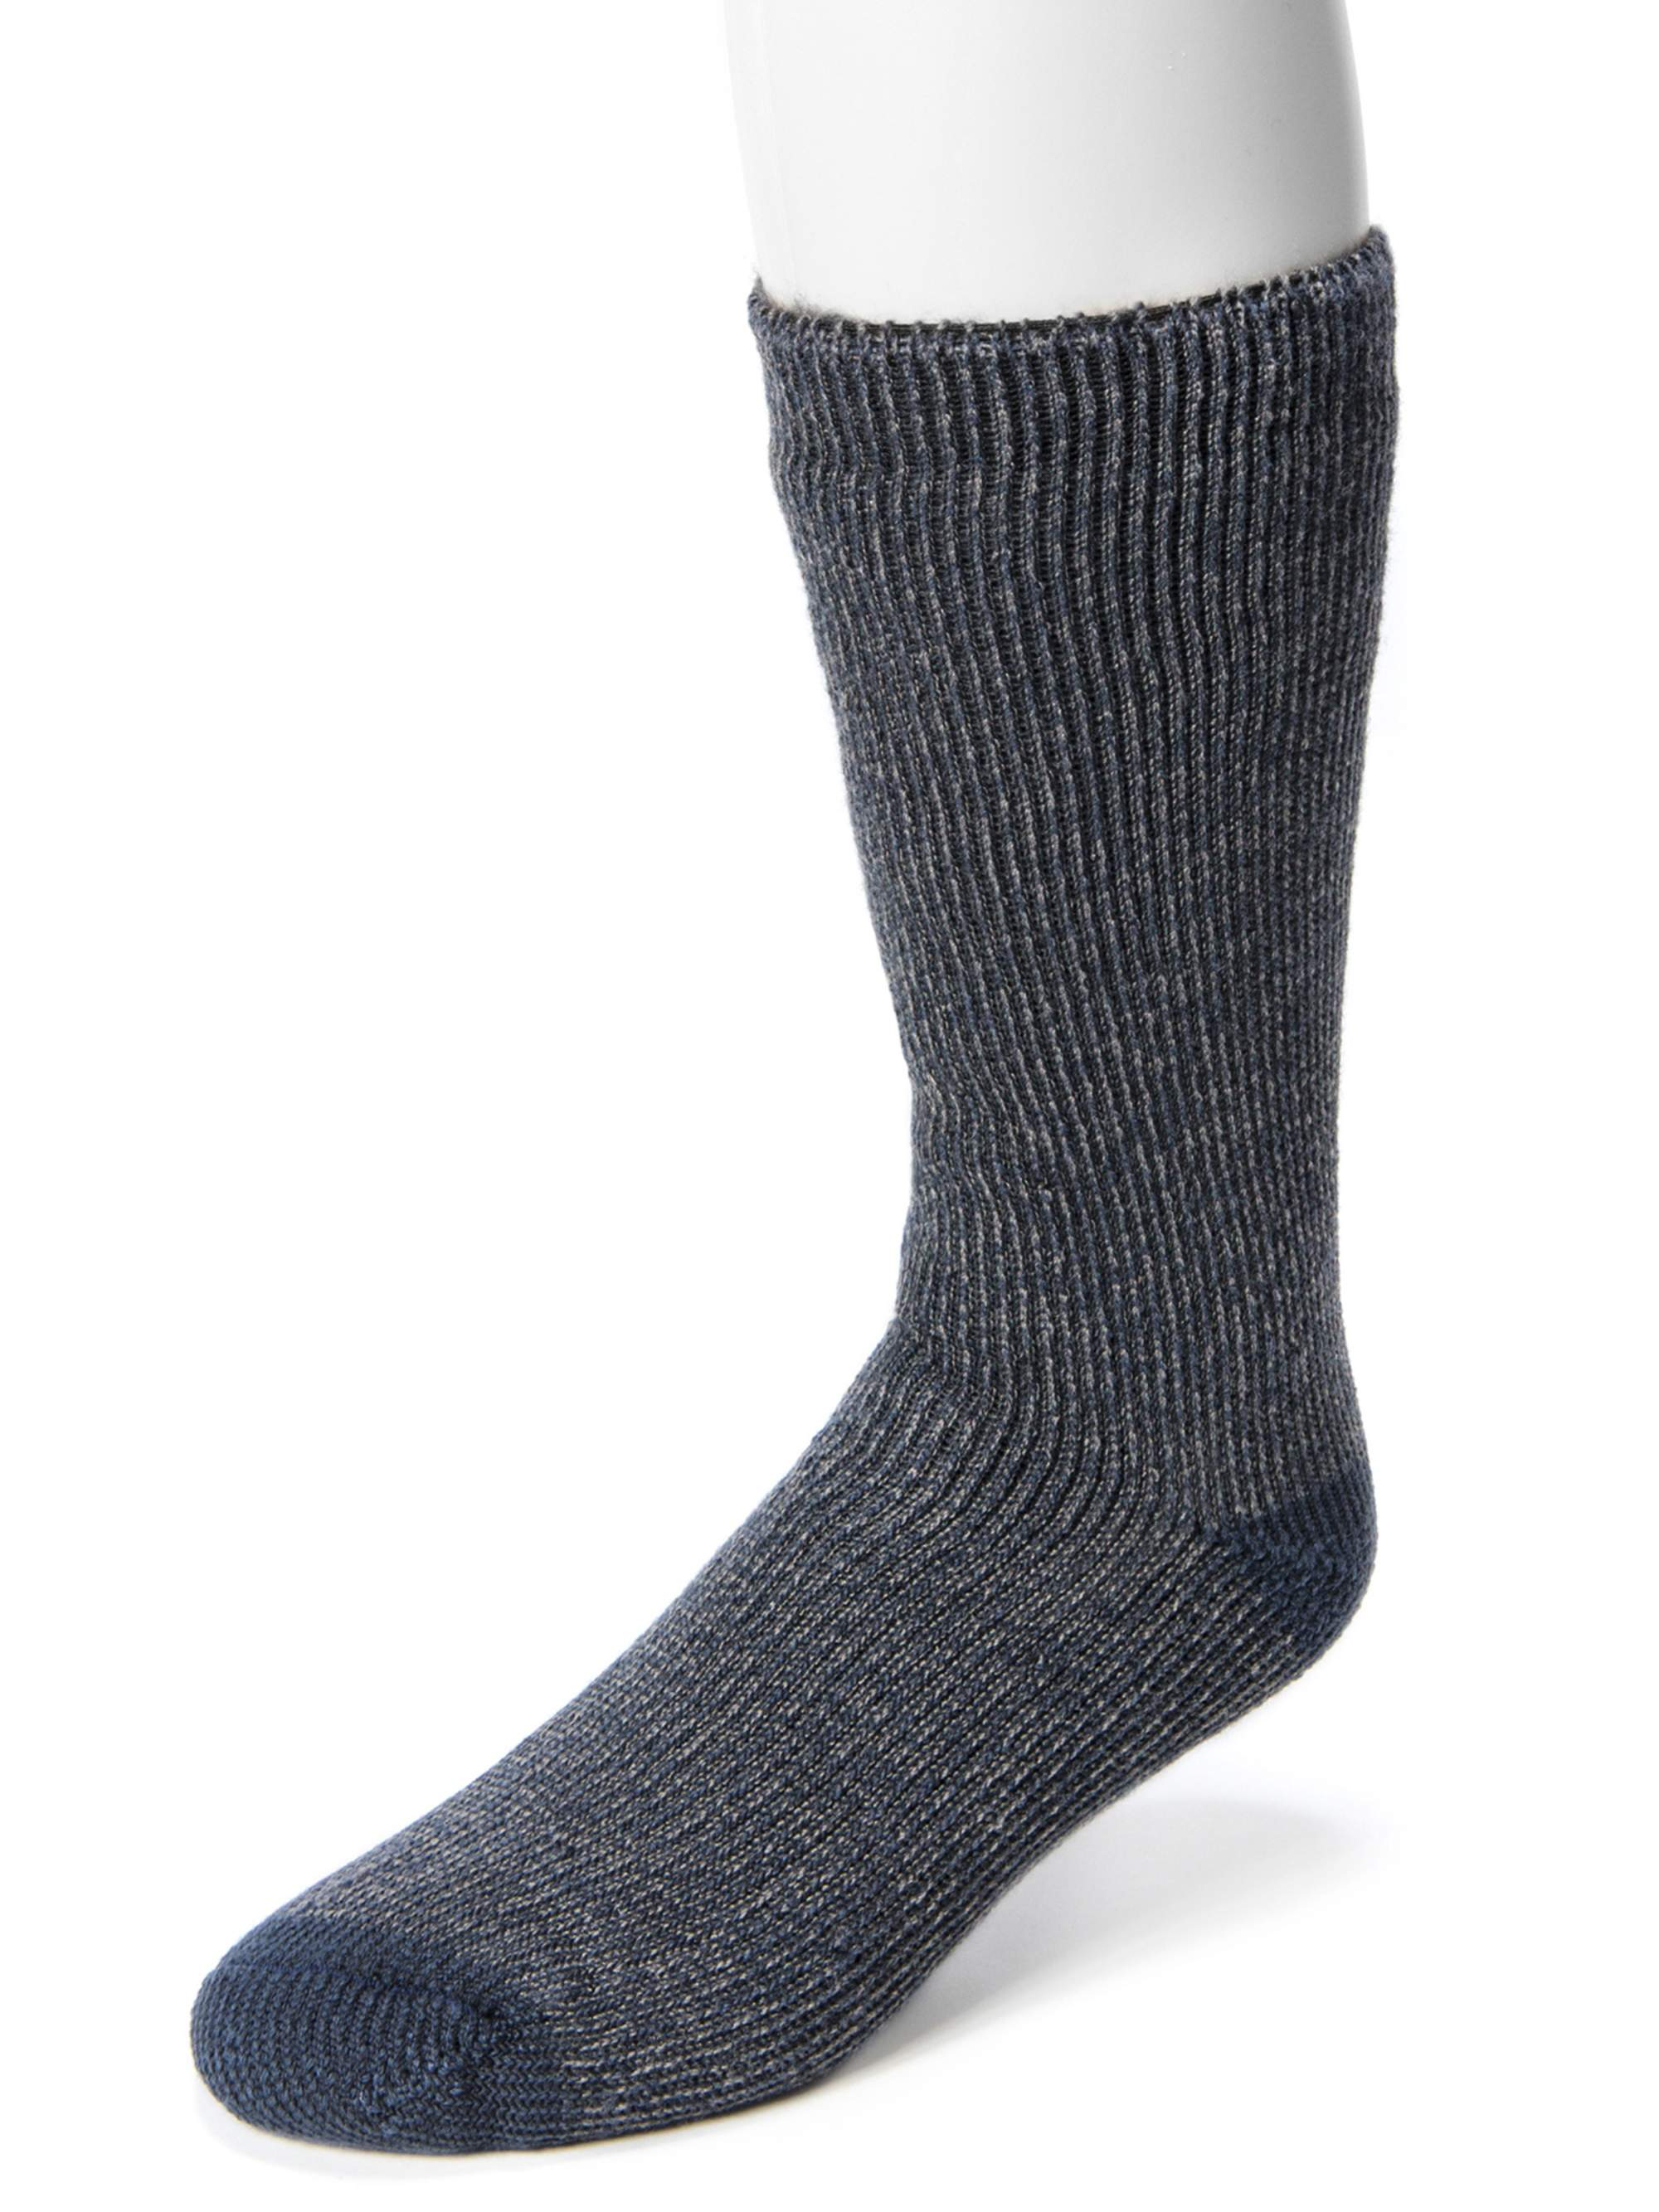 Men's Thermal Socks 1-Pair by Reliable of Milwaukee